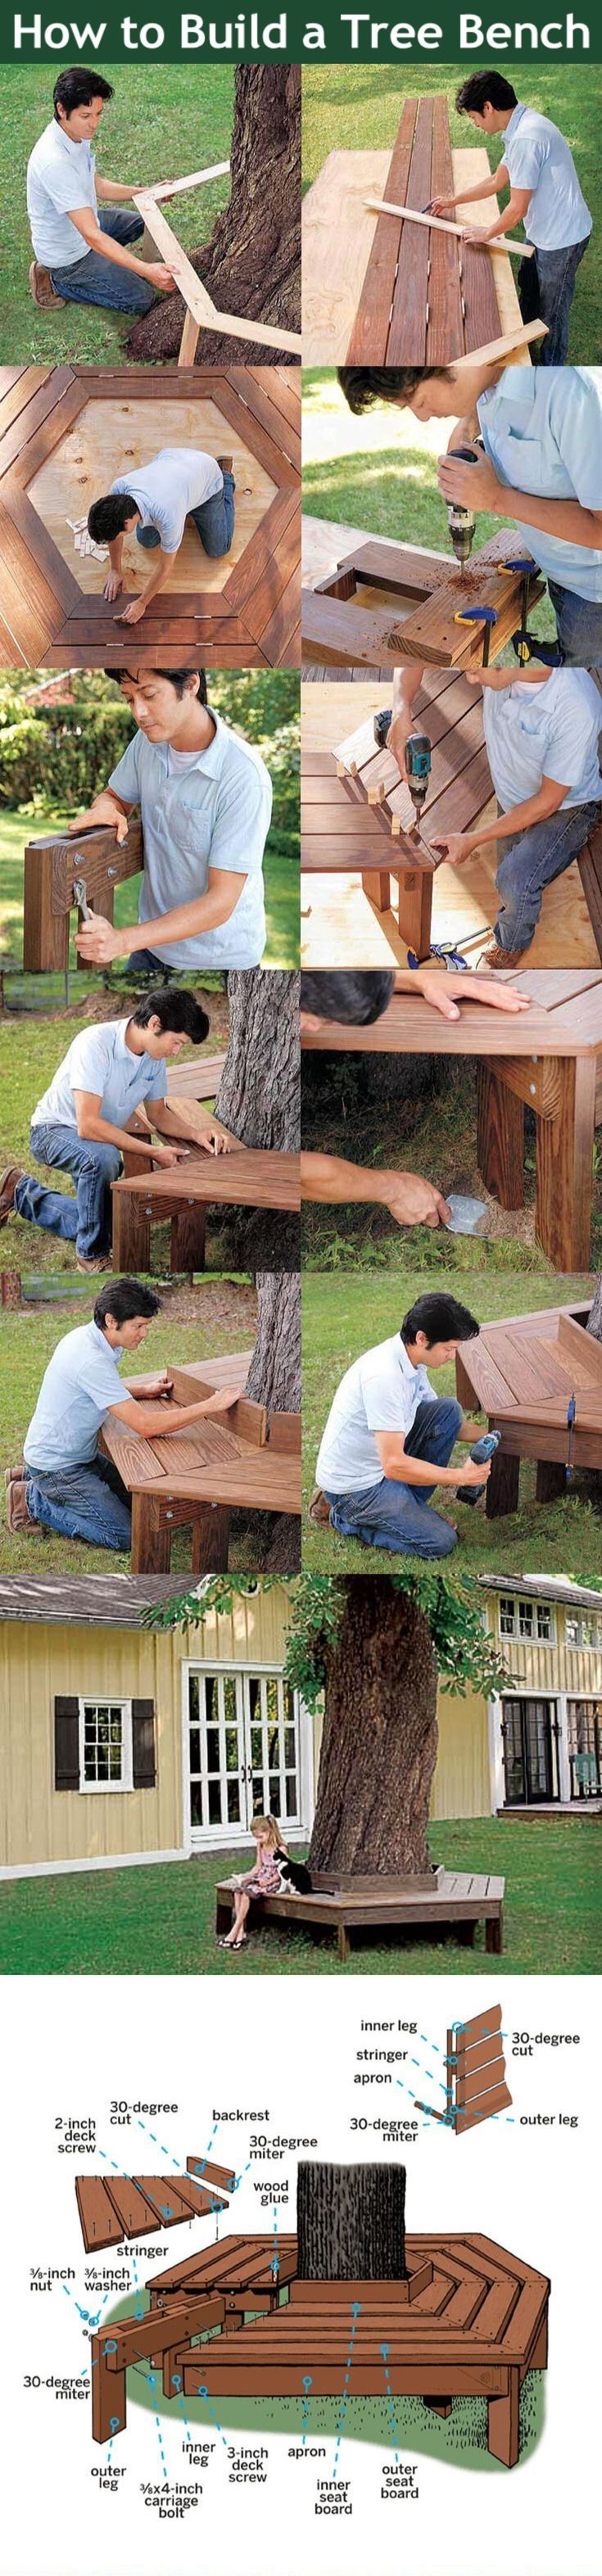 How To Build A Tree Bench Pictures, Photos, and Images for Facebook, Tumblr…